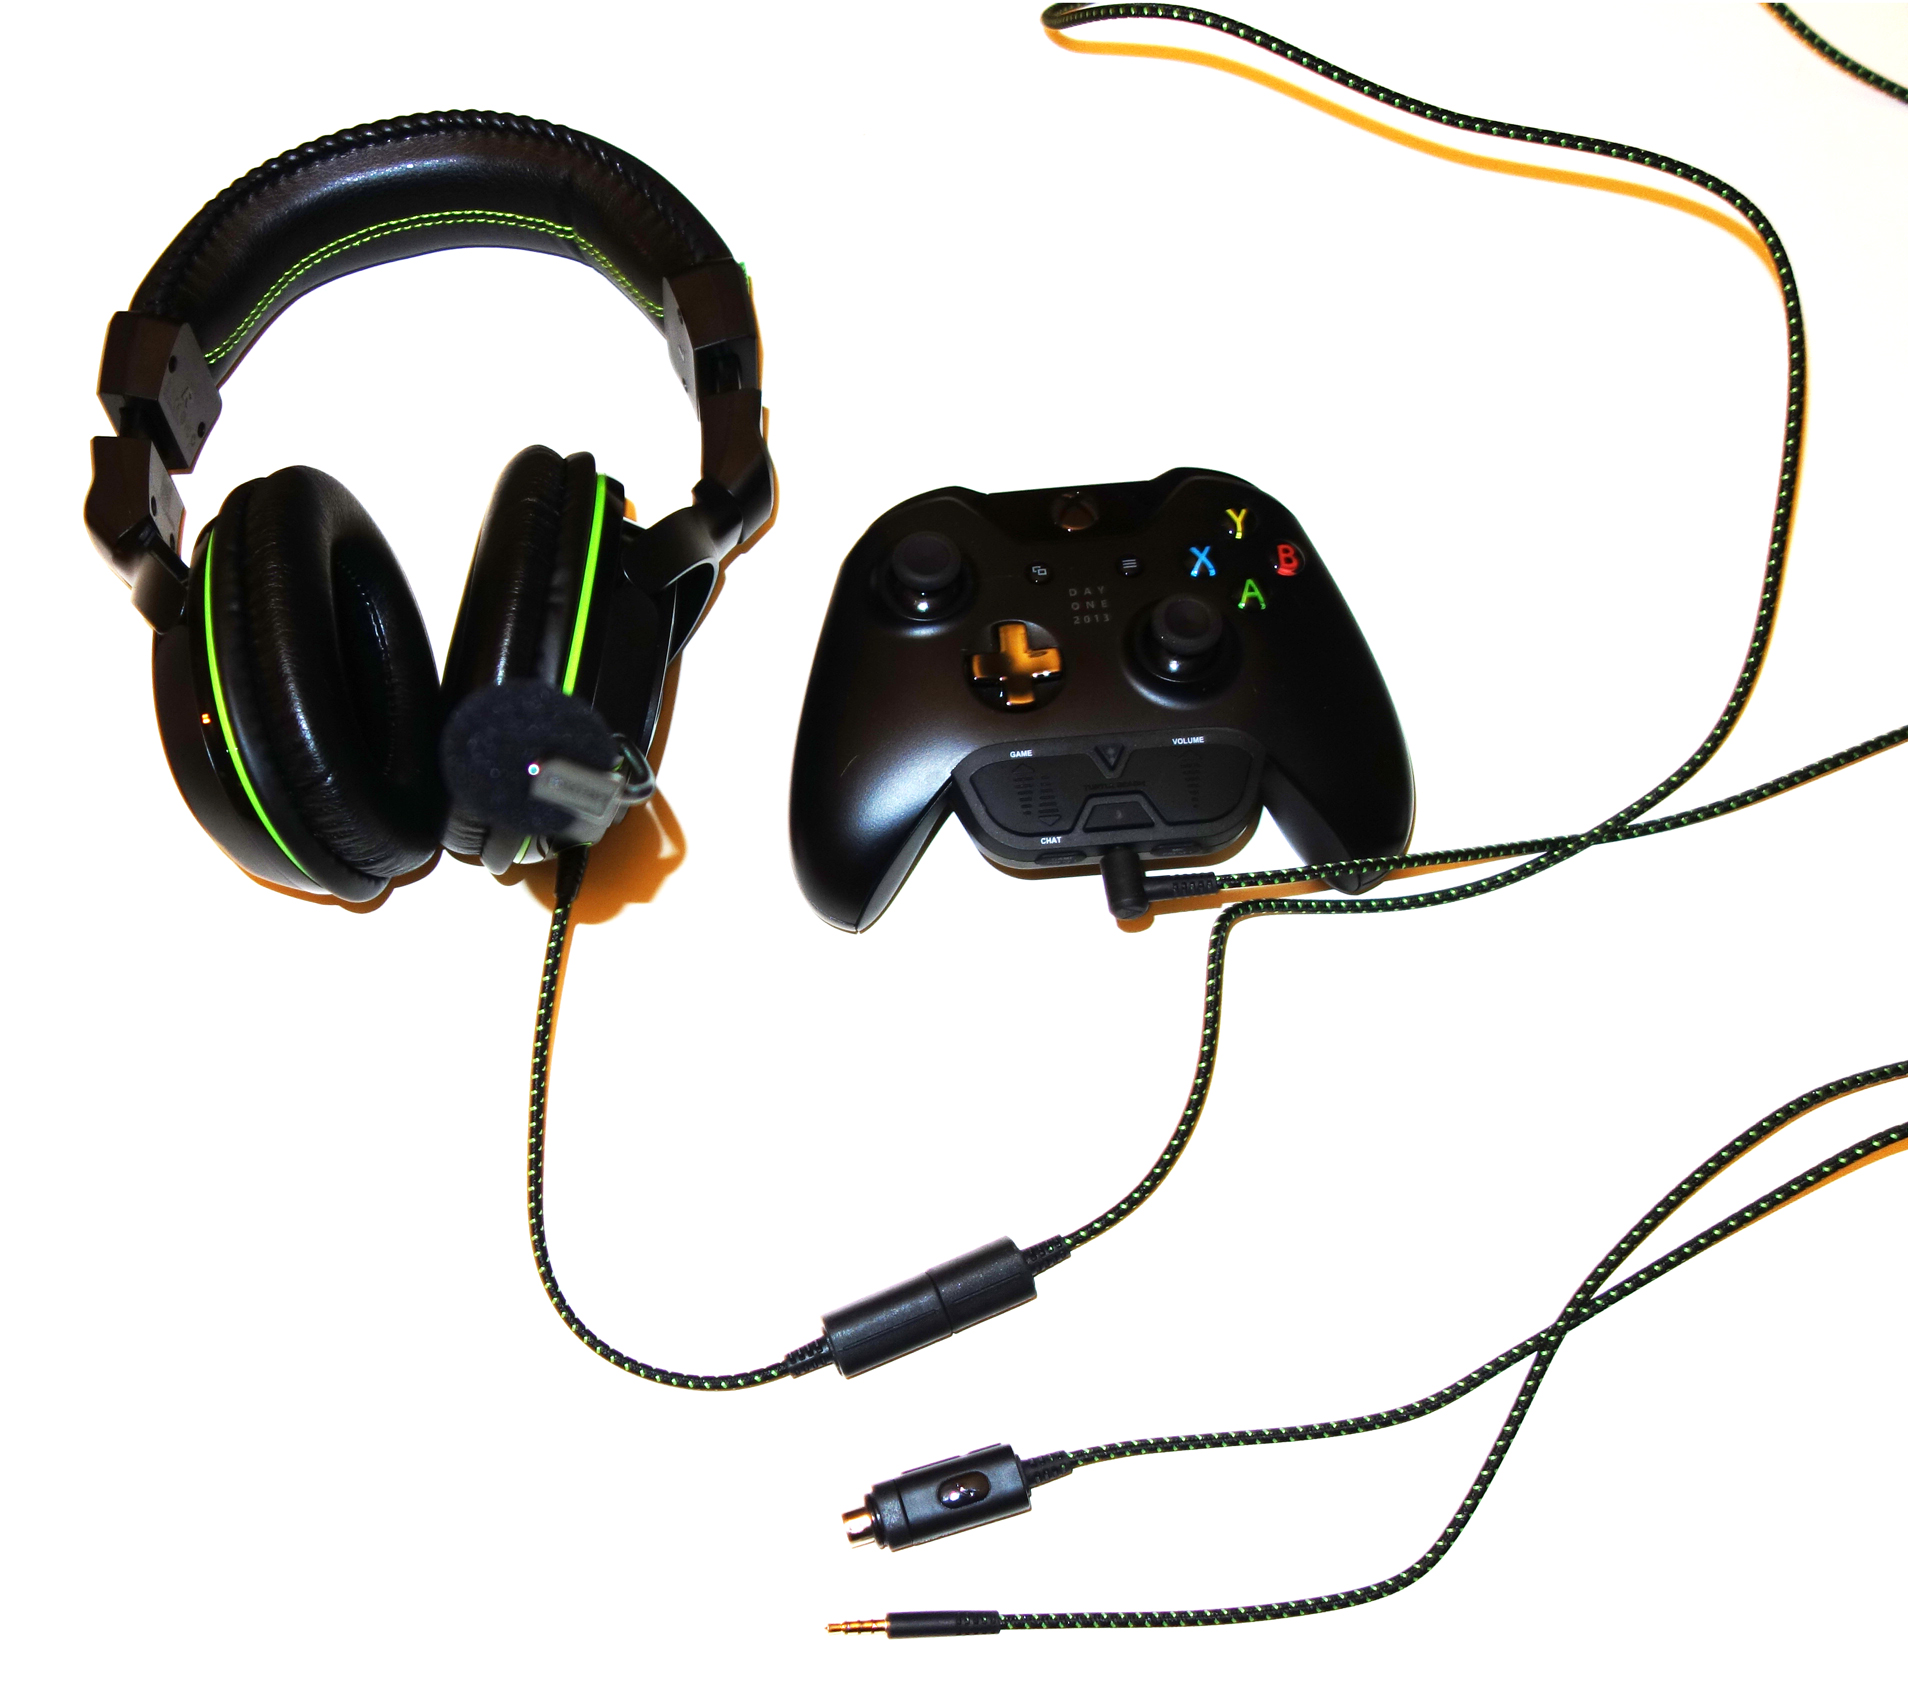 Ear Force XO SEVEN Pro & Ear Force Headset Audio Controller Plus, Mobile cable, Xbox One controller